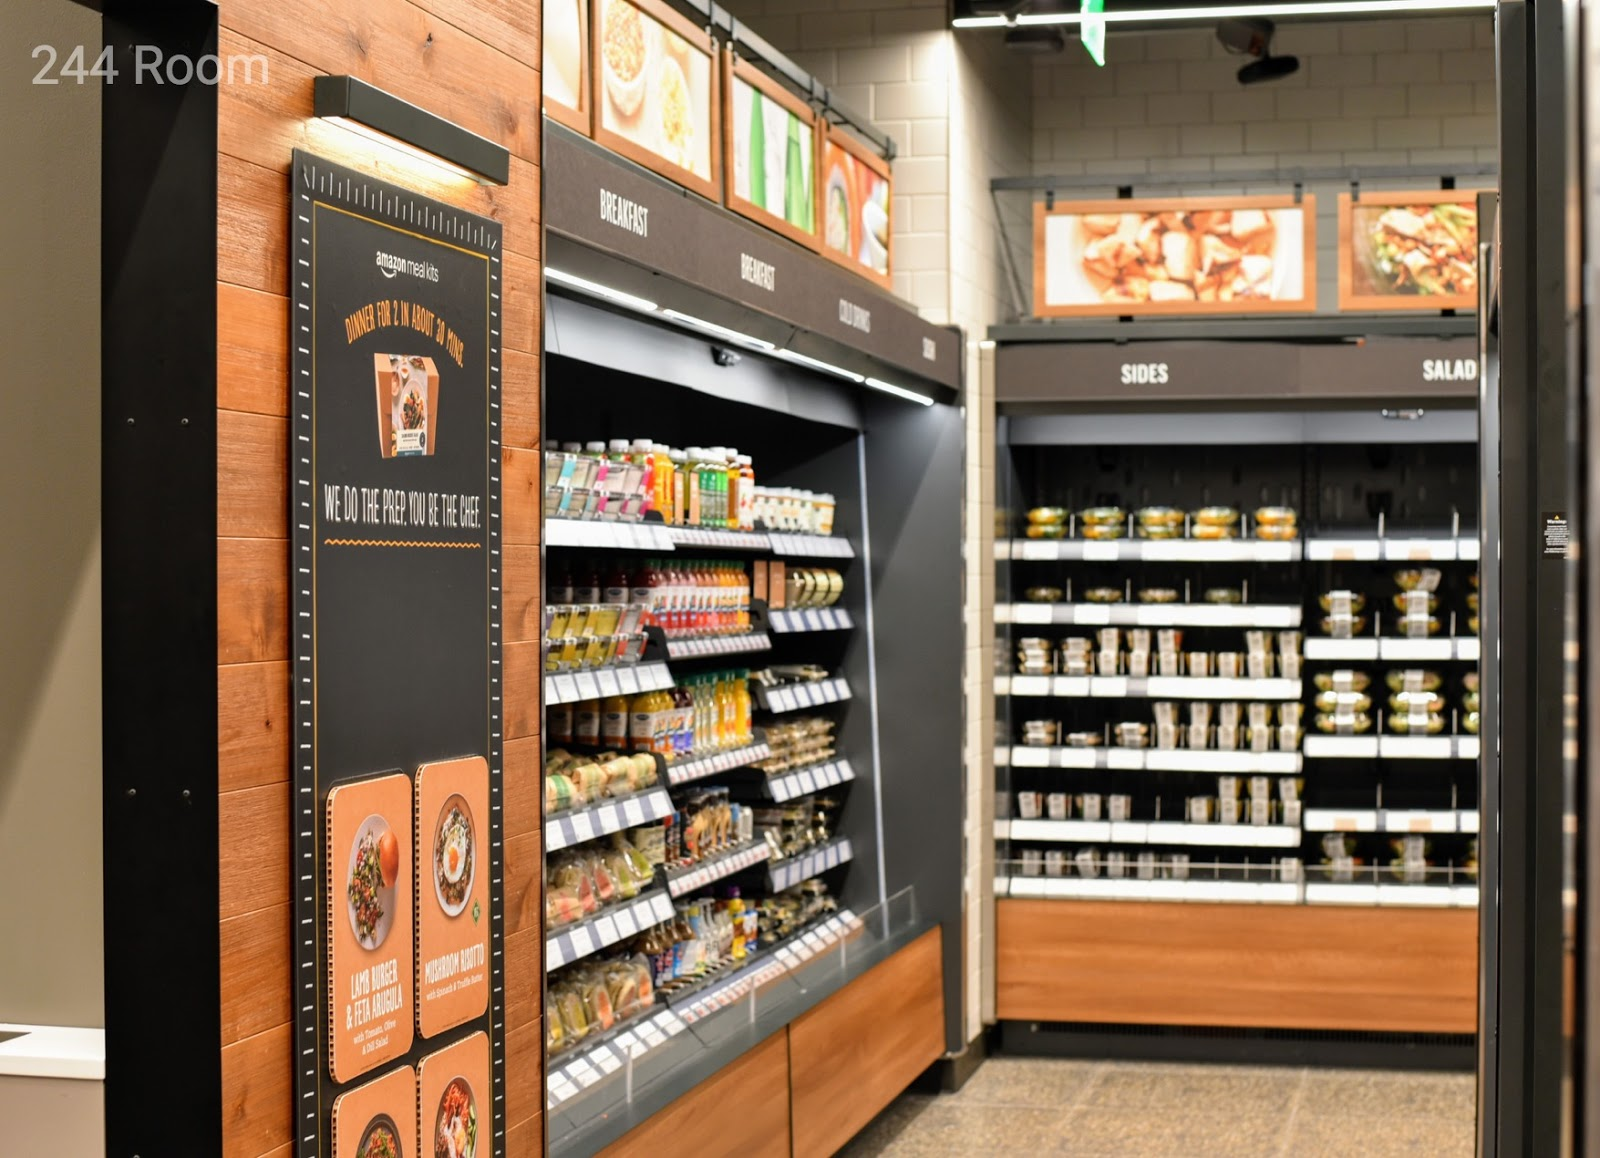 Amazon Go SF4